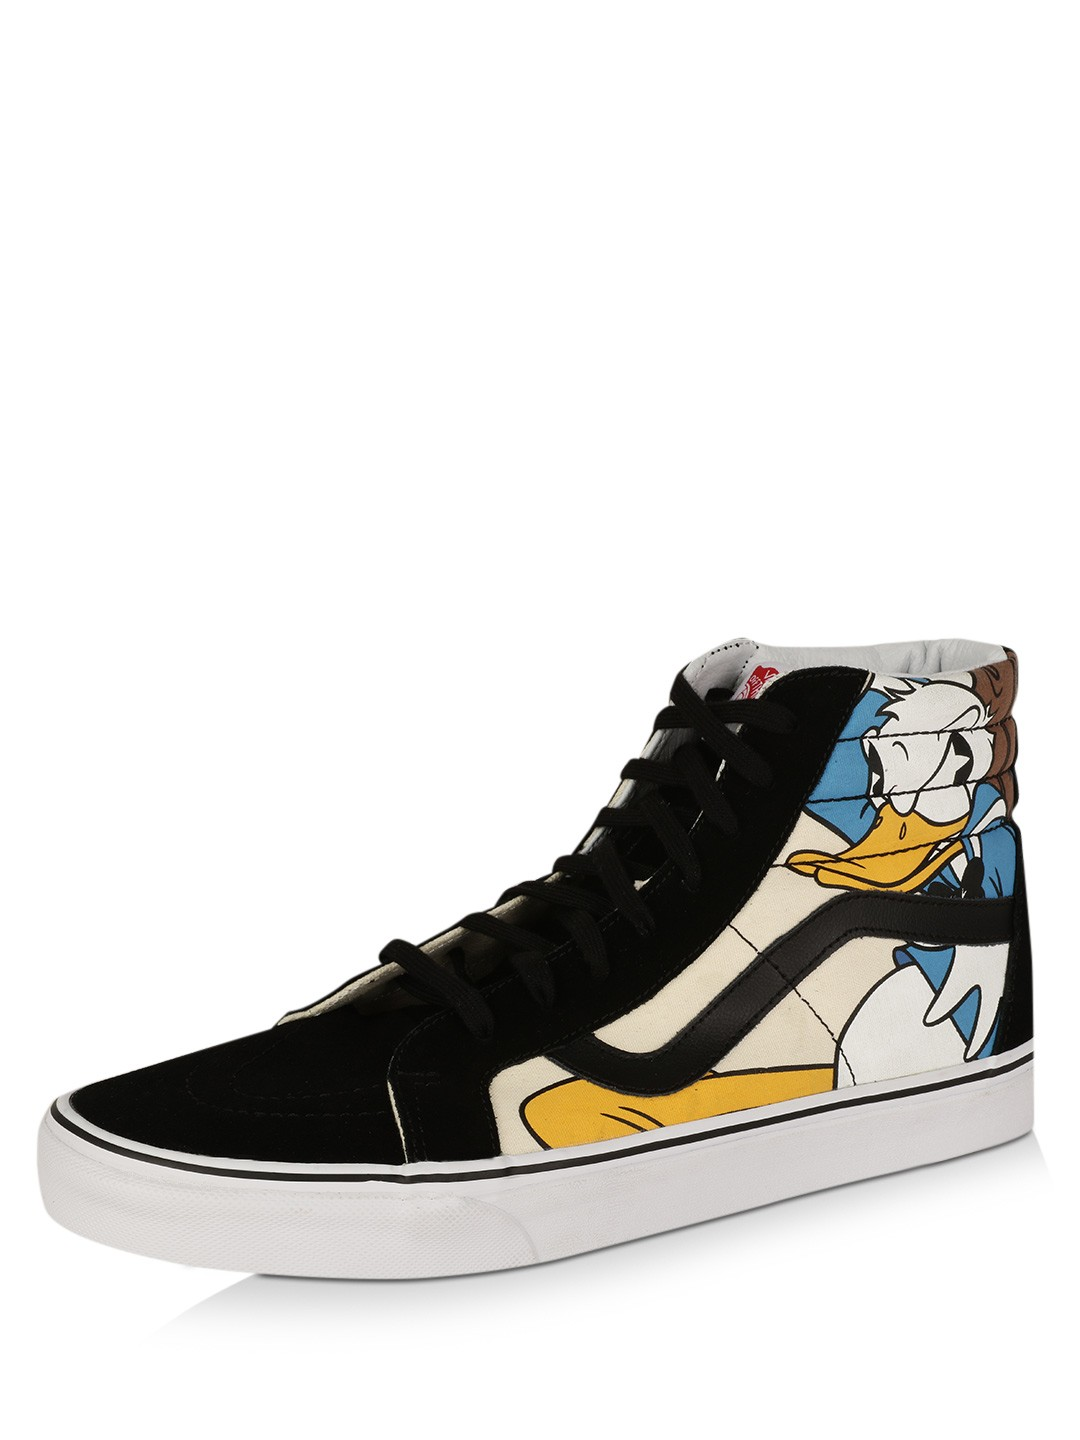 41c0f4aefb0256 Buy where to buy vans shoes online